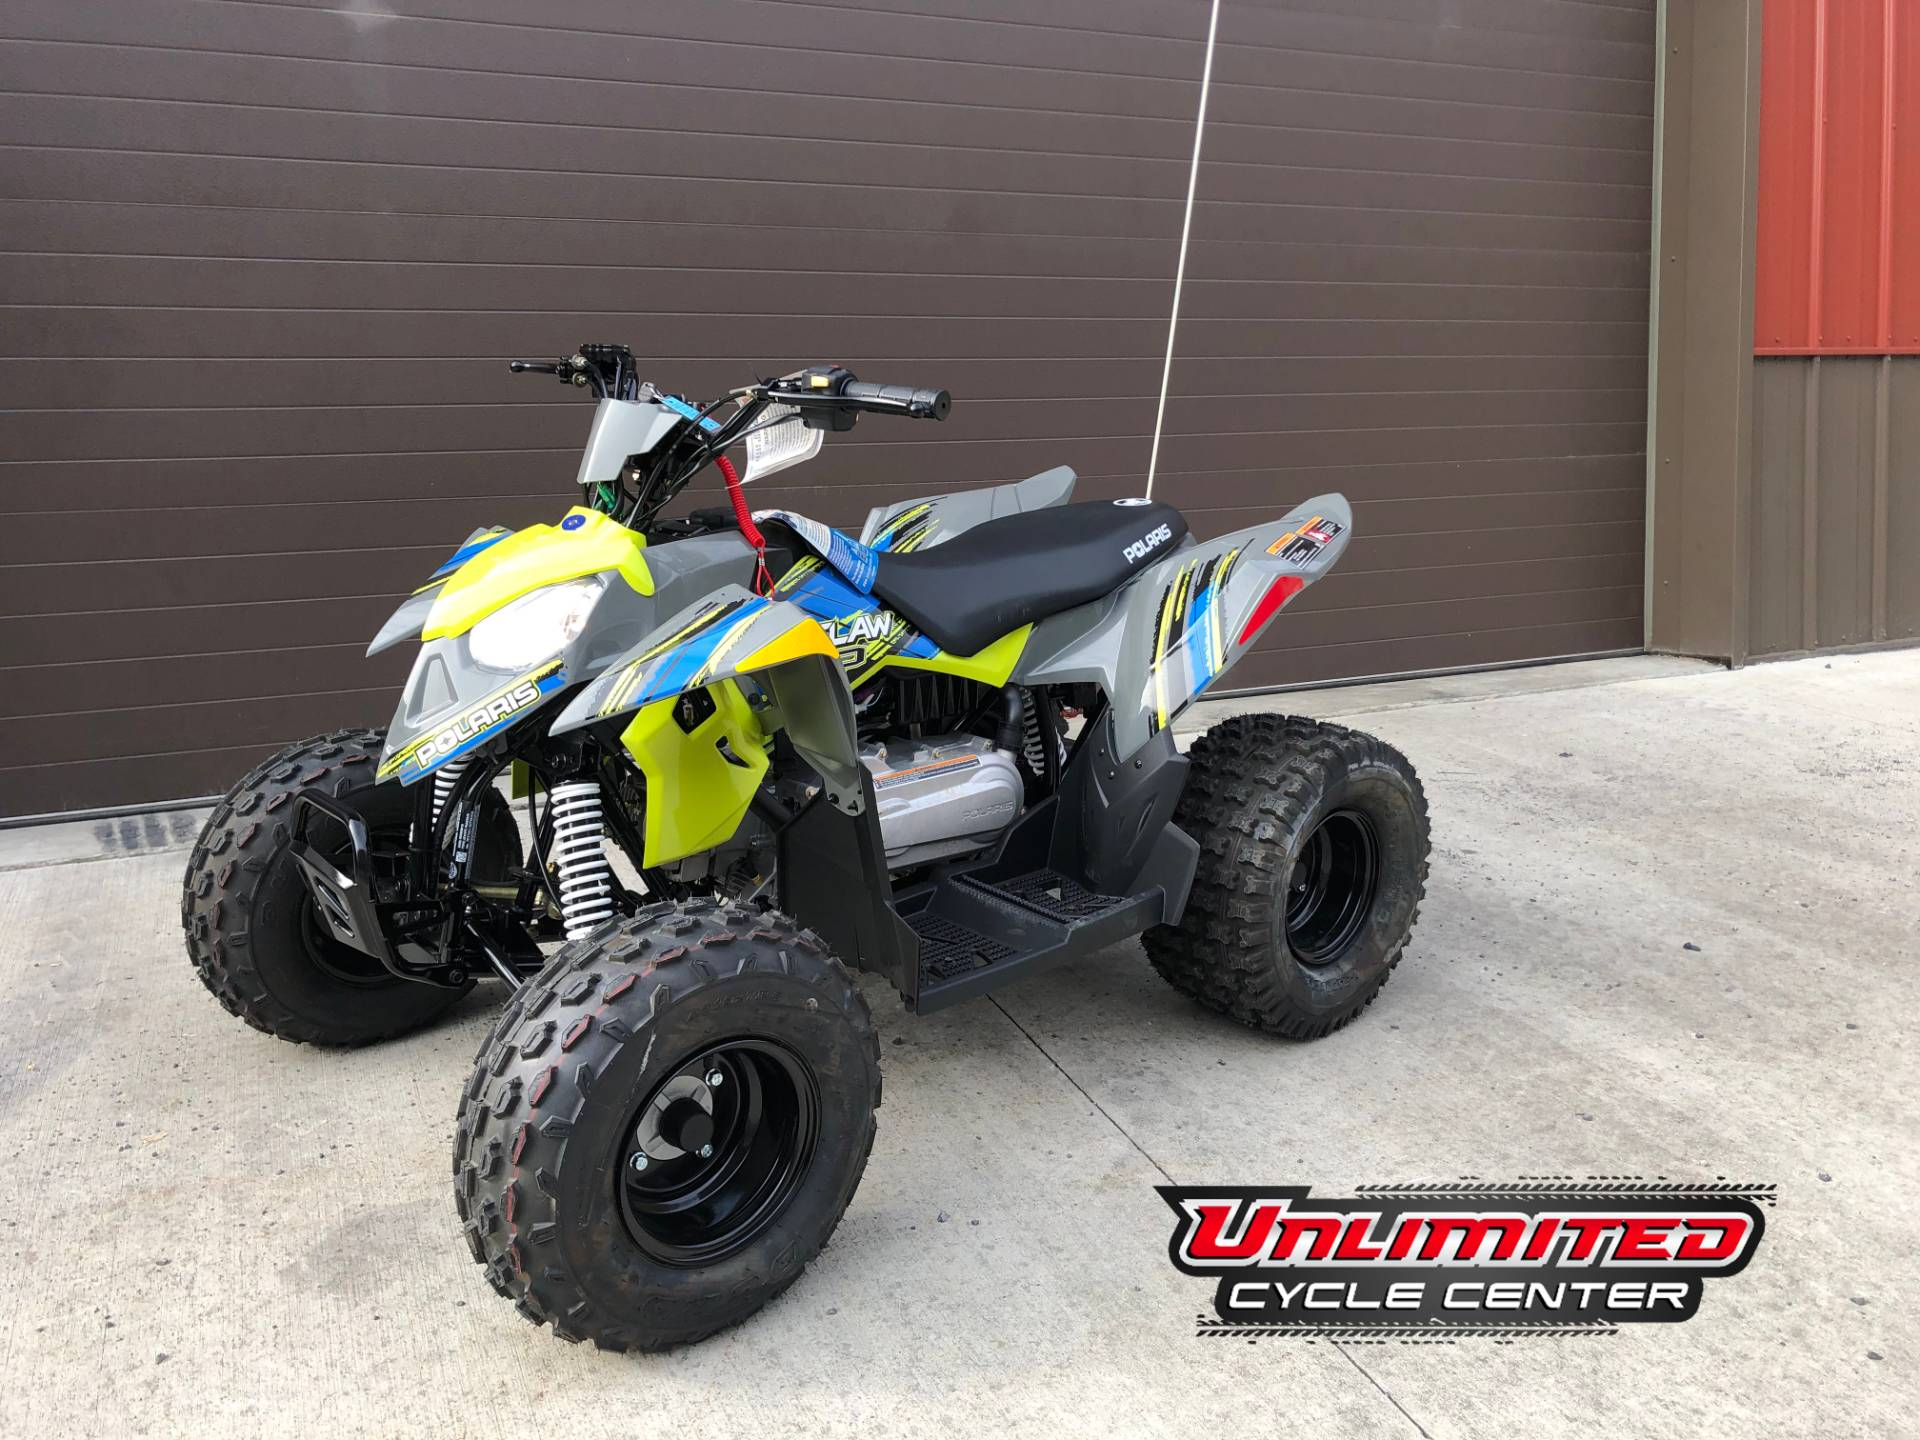 2019 Polaris Outlaw 110 in Tyrone, Pennsylvania - Photo 1